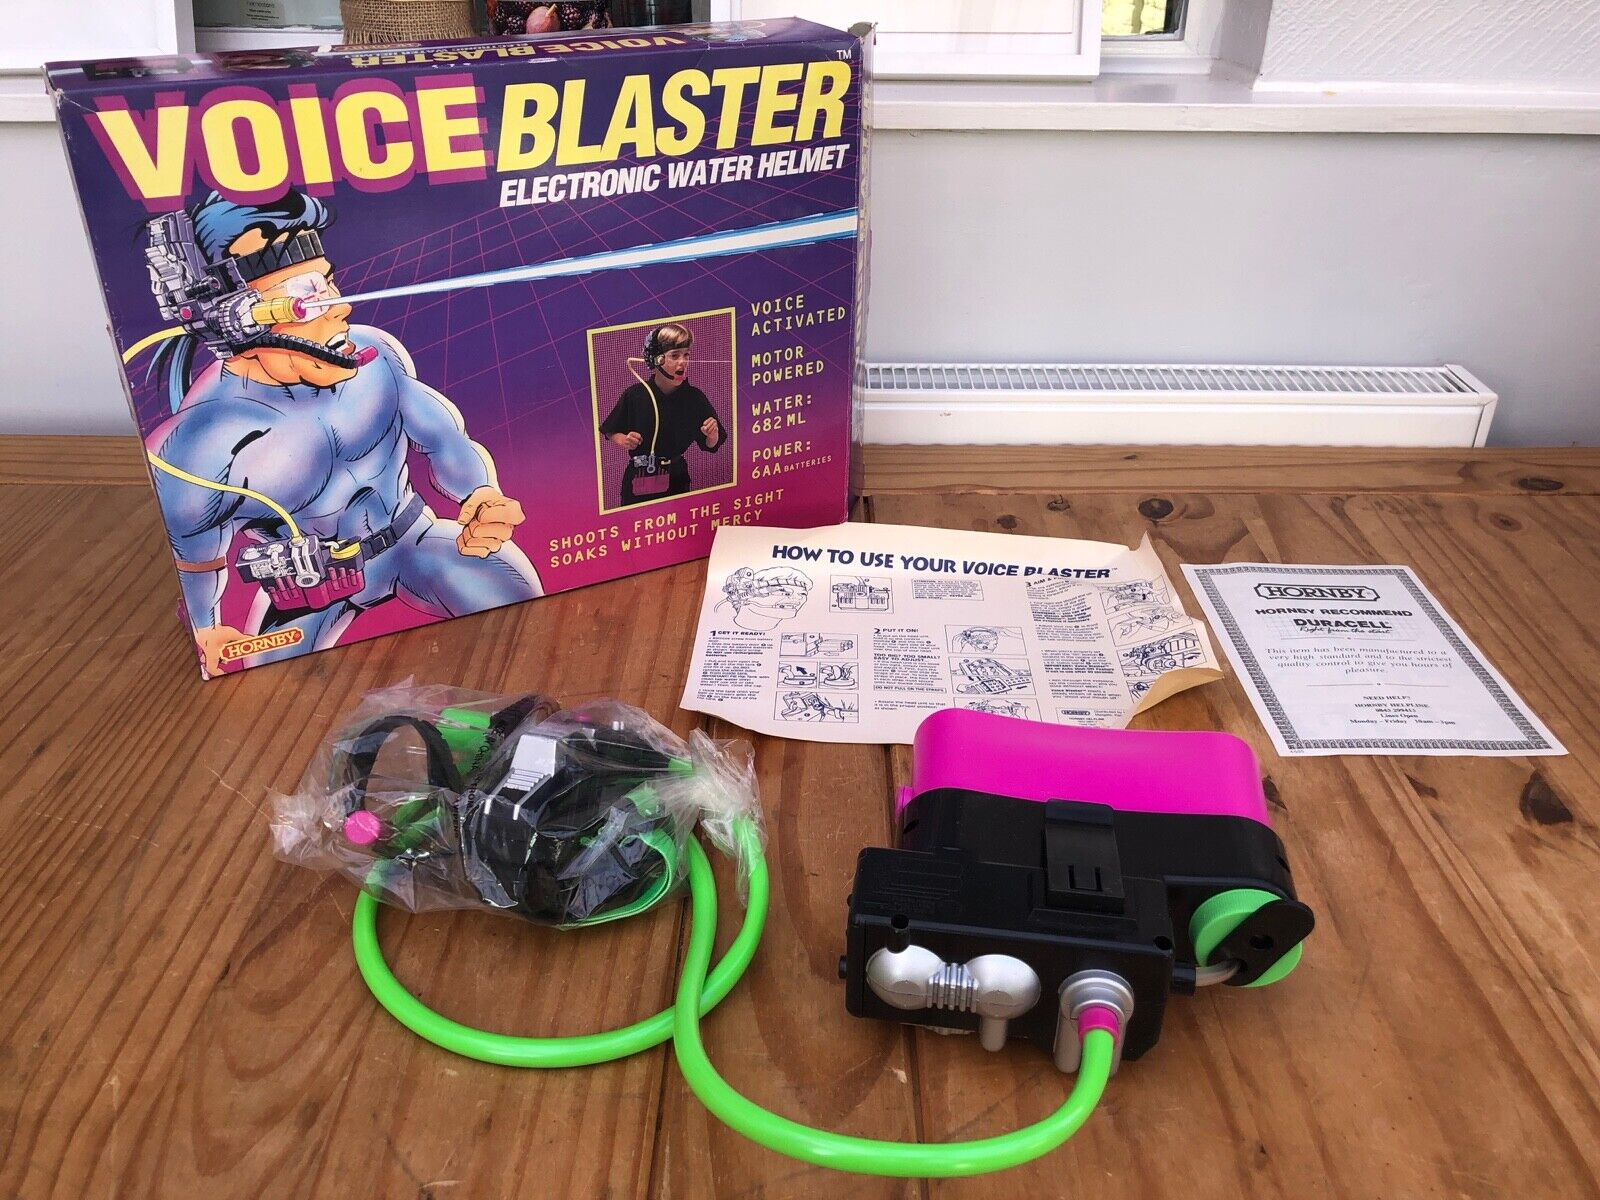 VERY RARE VINTAGE Hornby Voice Blaster - Electronic Water Helmet Sealed Contents